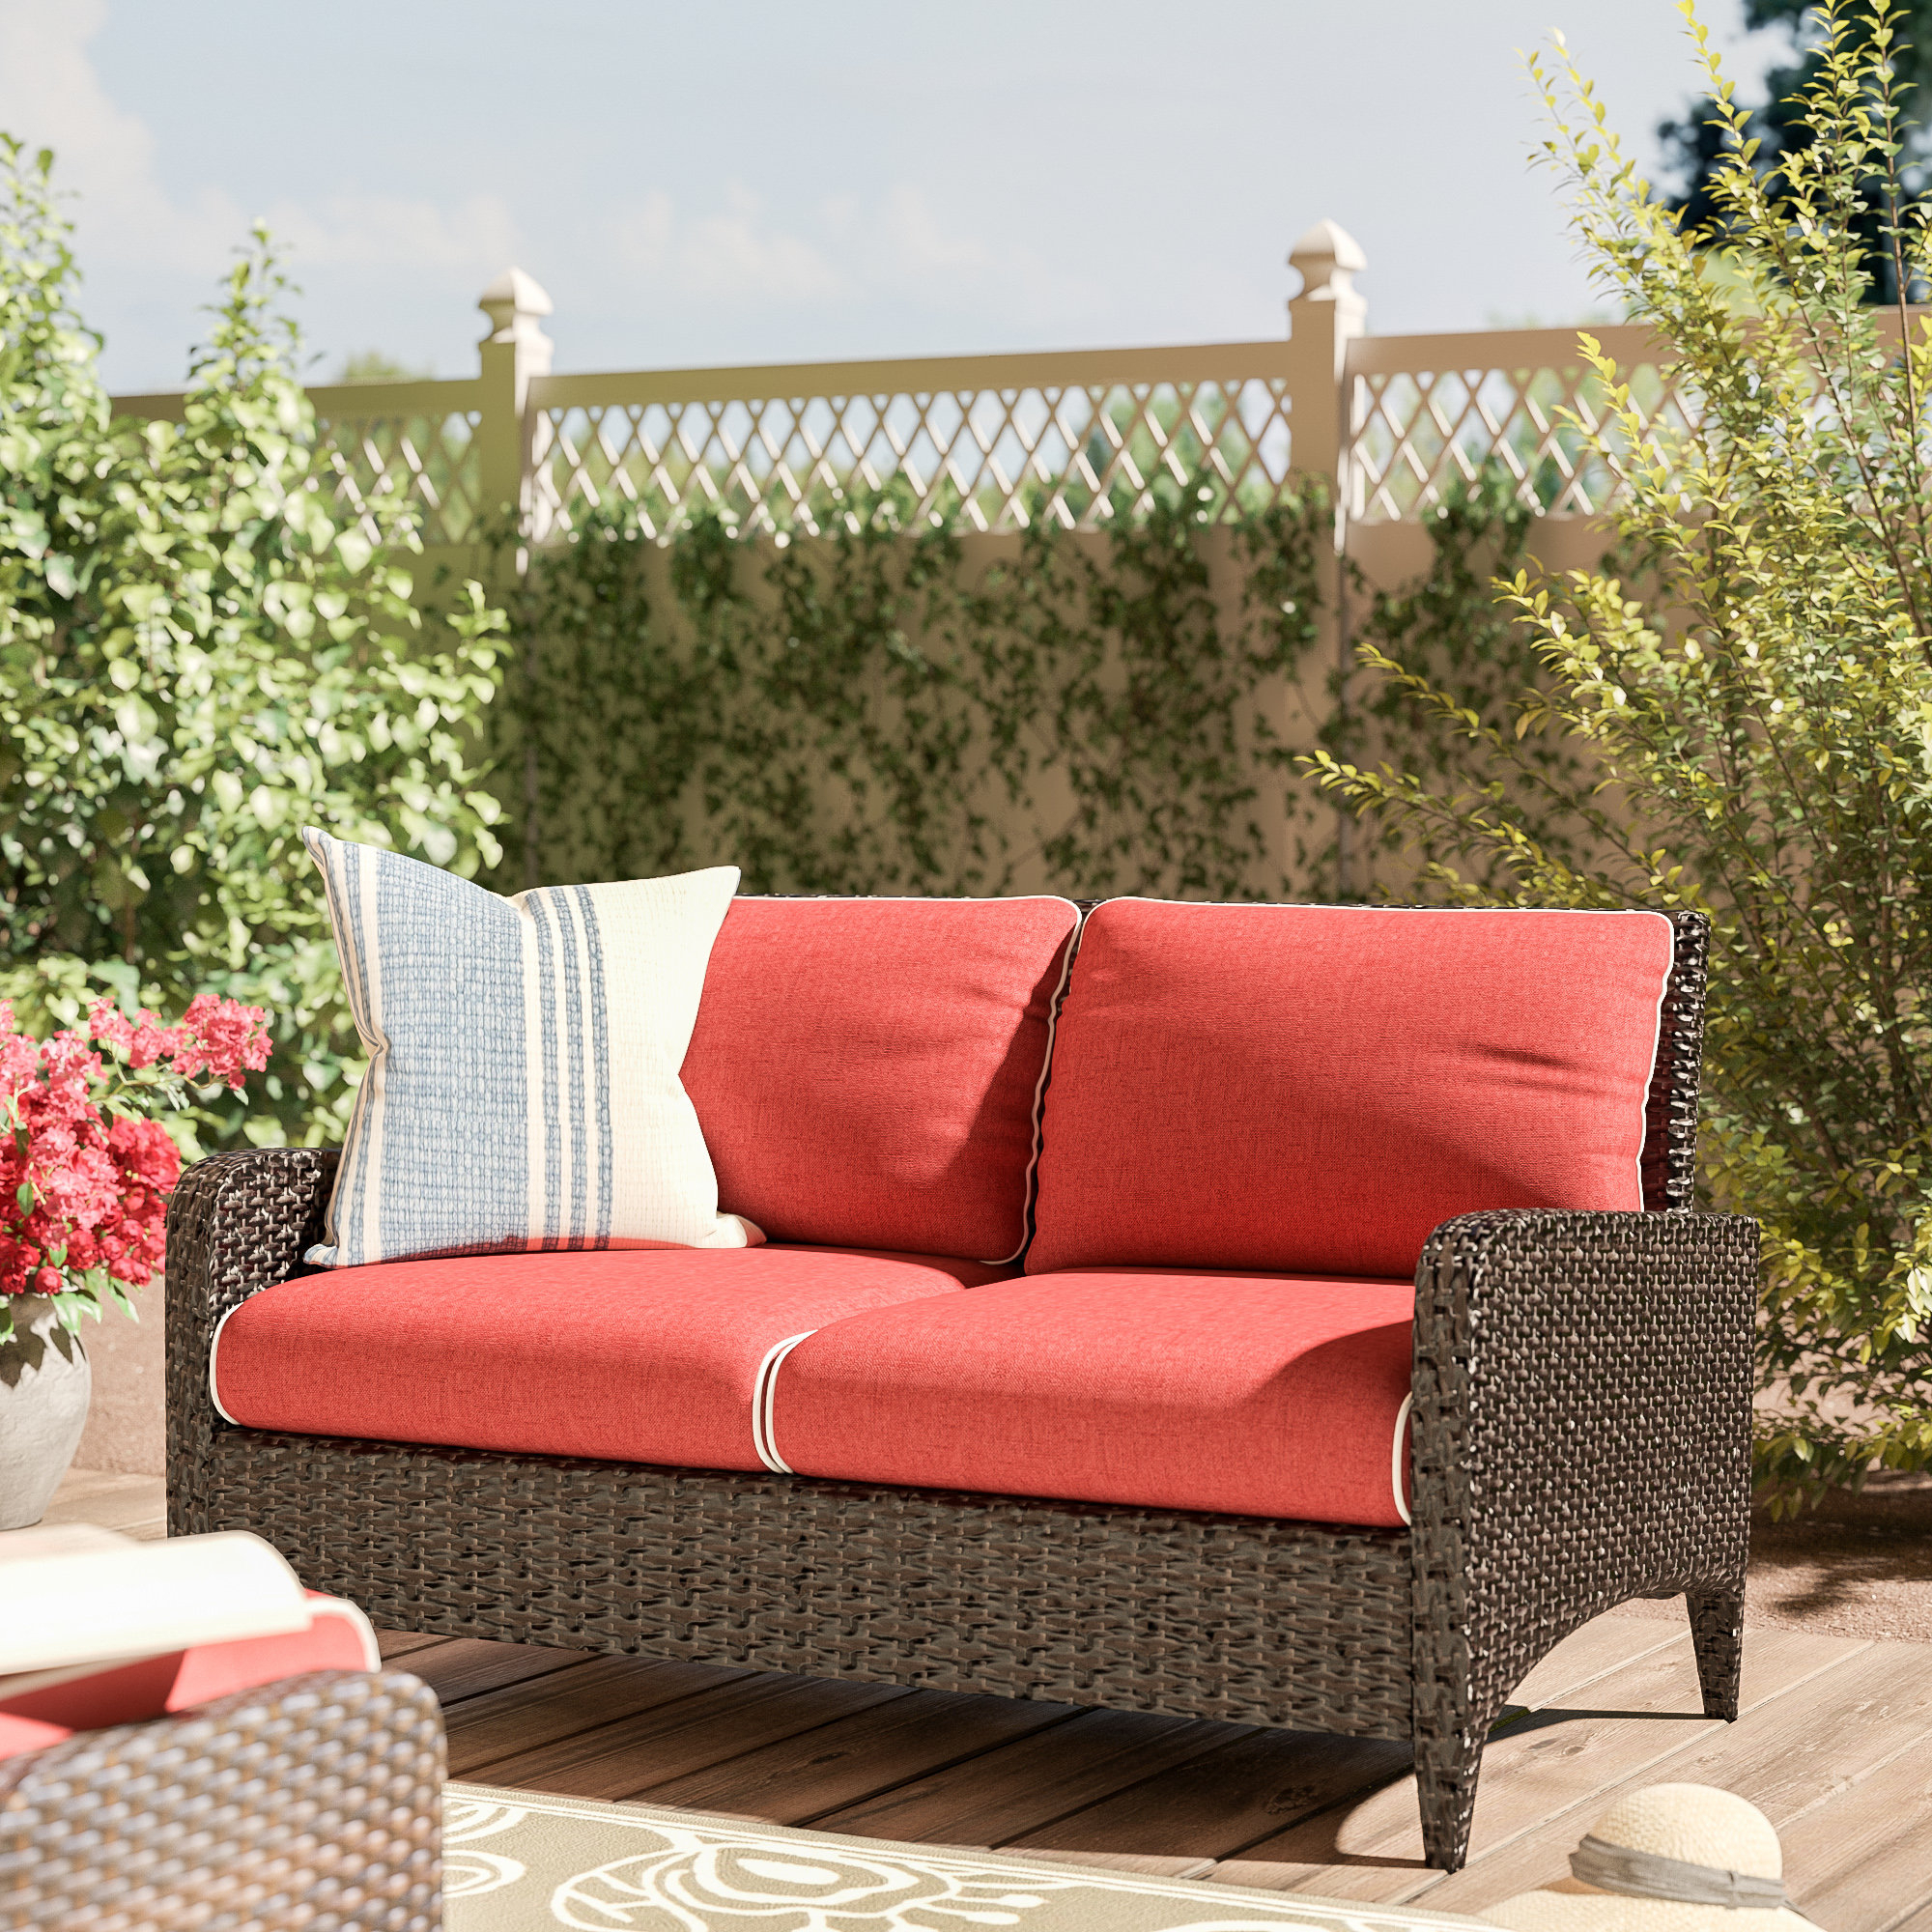 Belton Loveseats With Cushions In Well Known World Menagerie Mosca Patio Loveseat With Cushions & Reviews (View 6 of 25)